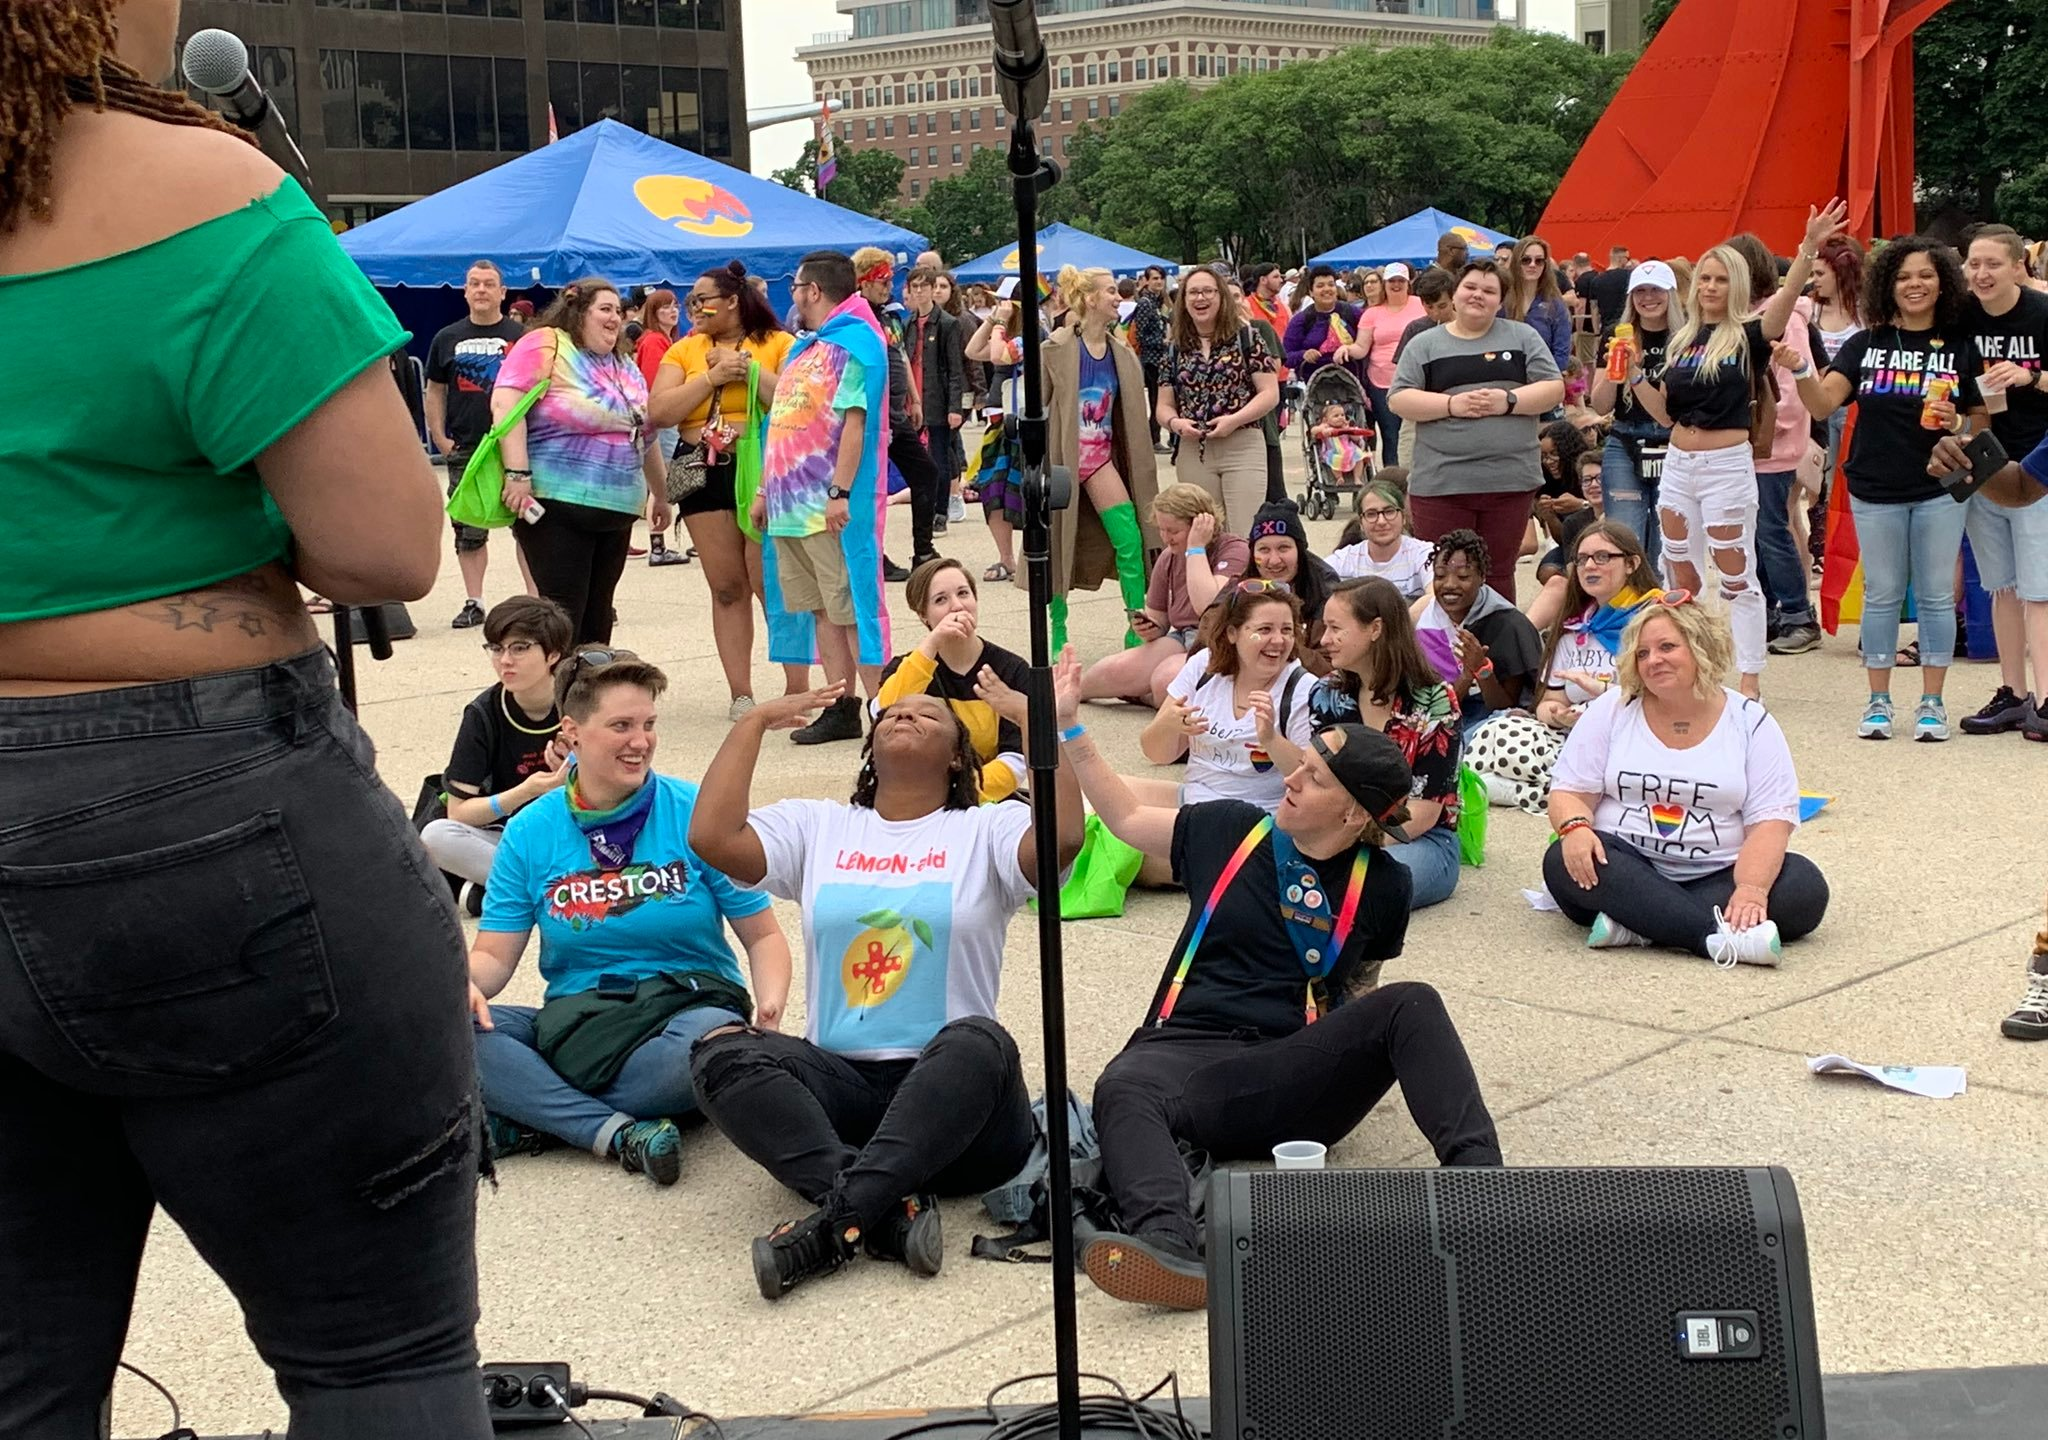 A photo from Grand Rapids Pride Festival. (June 15, 2019)